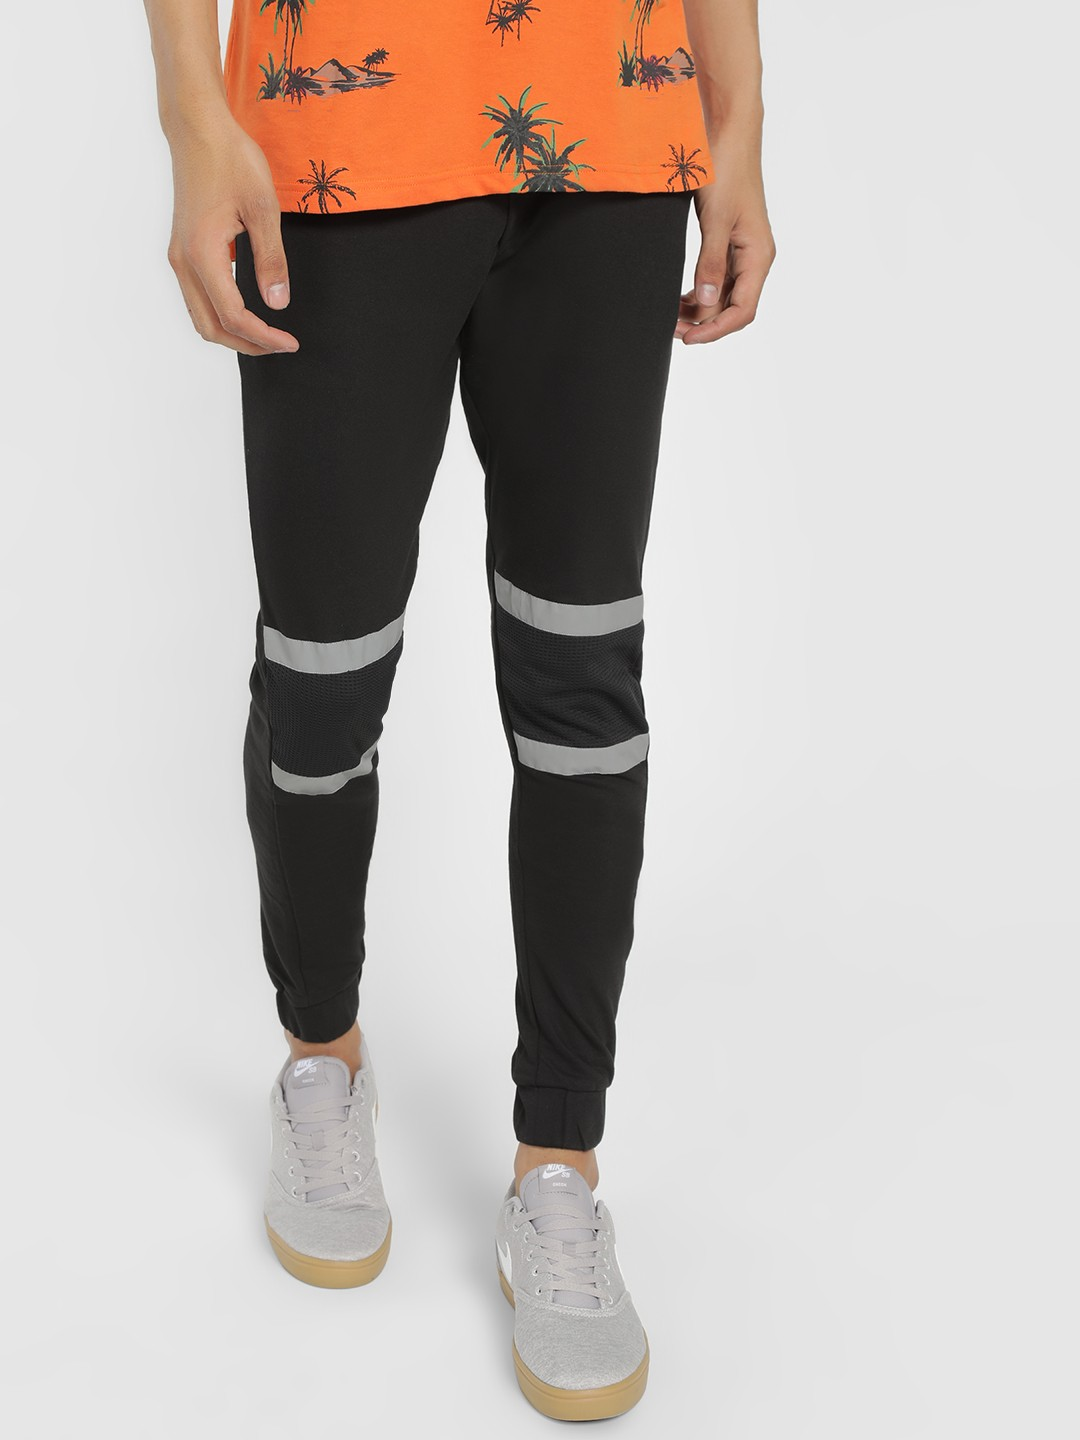 SKULT By Shahid Kapoor Black Reflective Mesh Panel Knitted Joggers 1